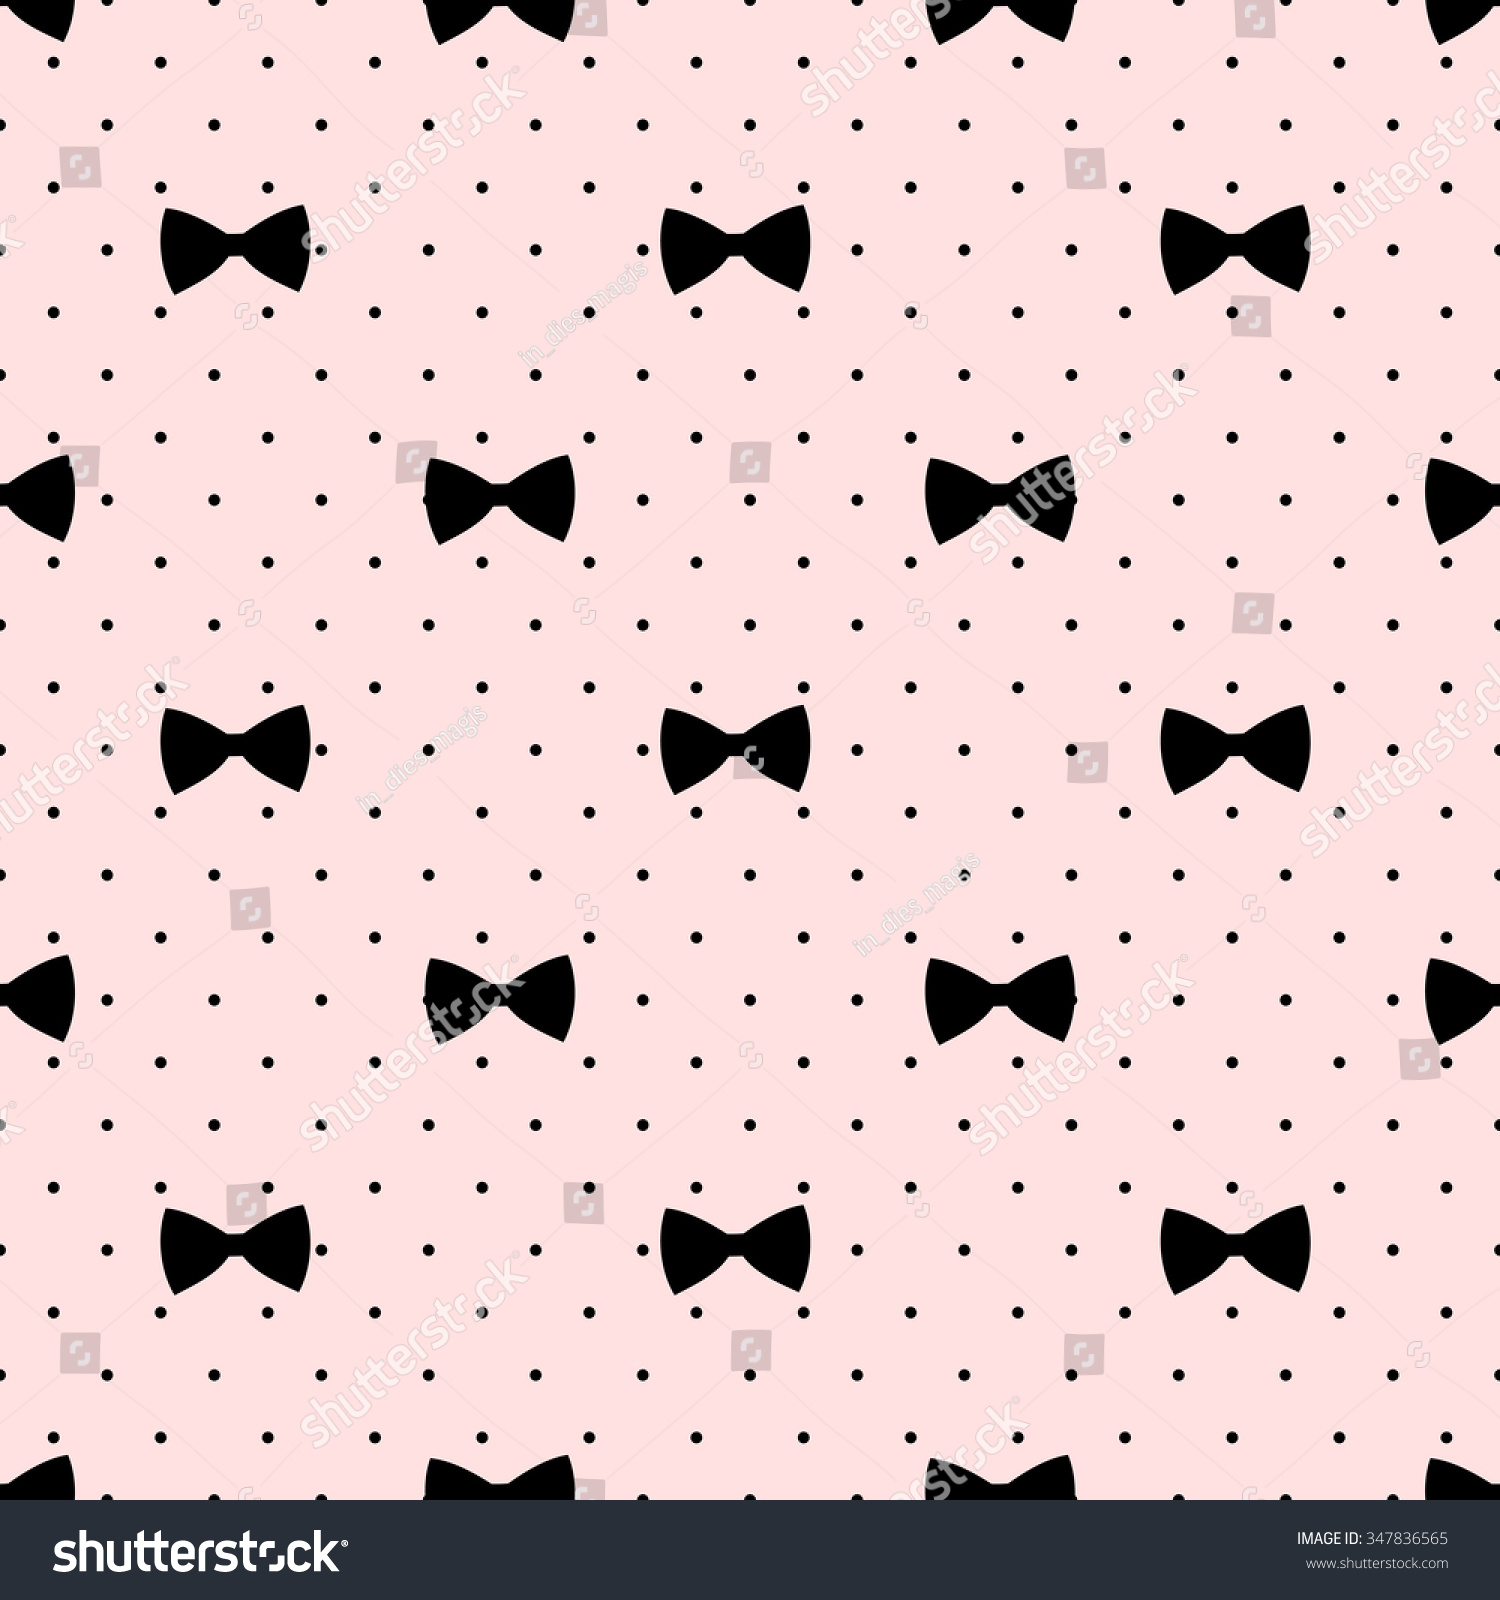 Bow Pattern Cool Design Ideas